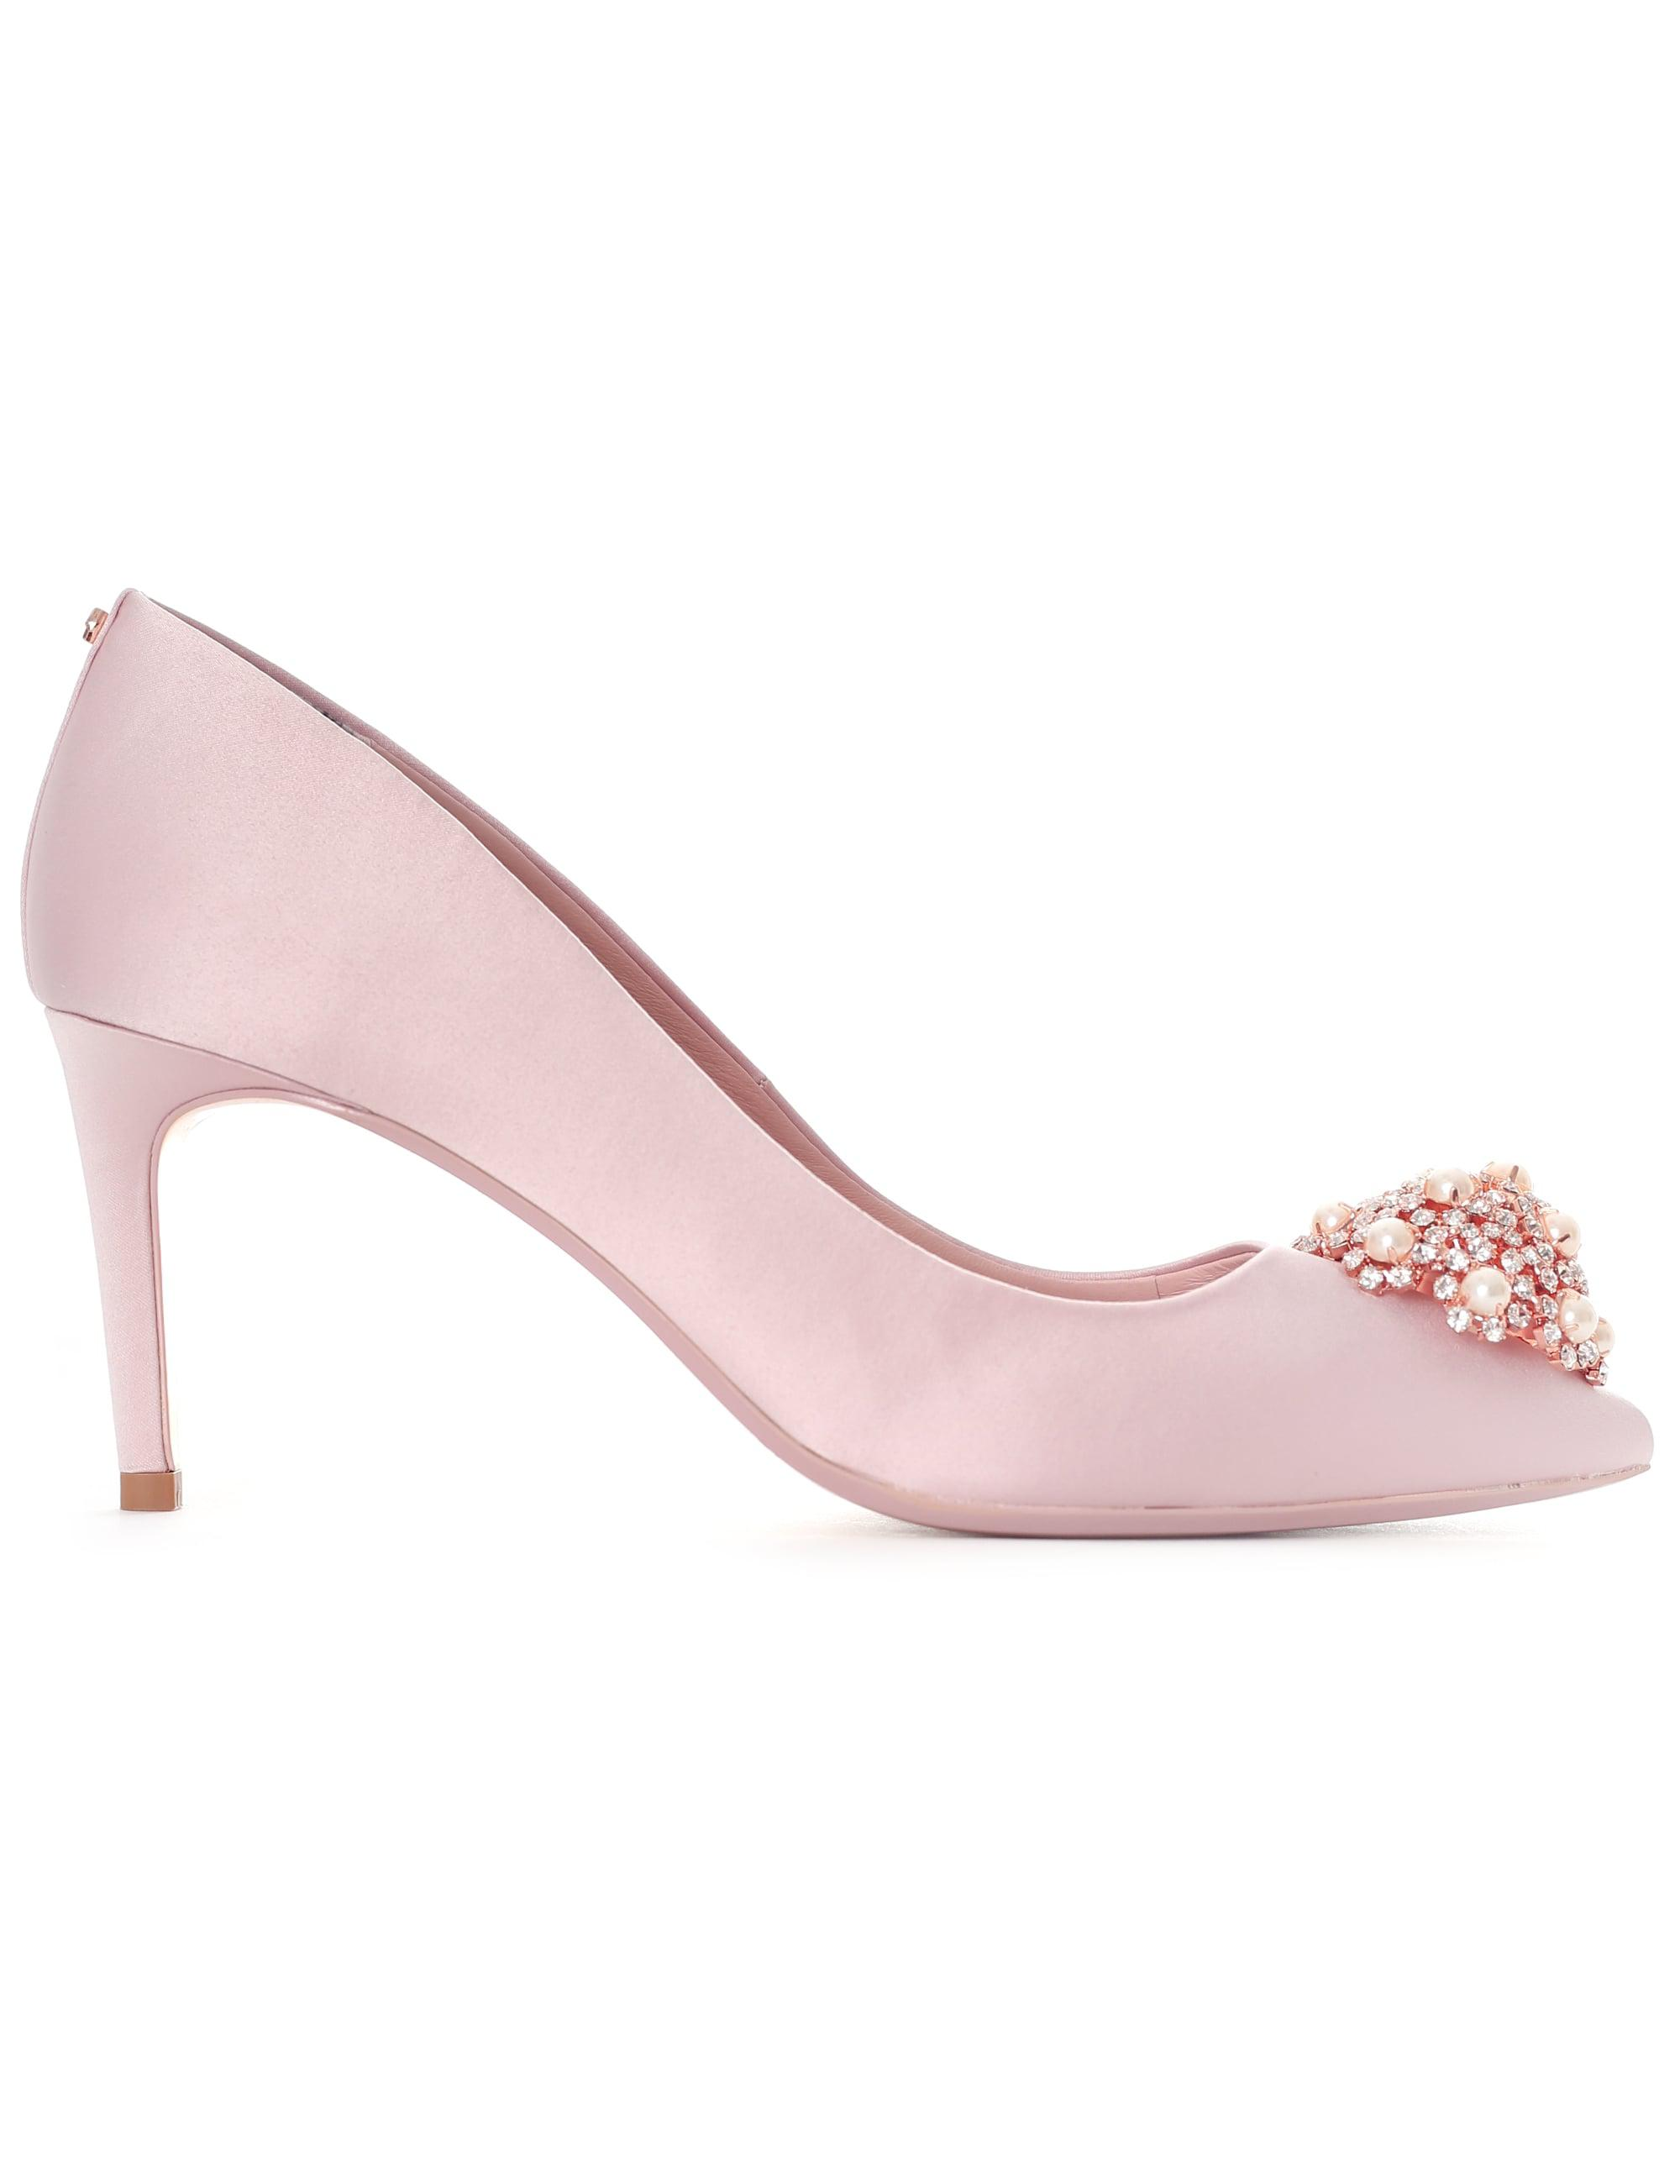 9f26b407cd9 Ted Baker Dahrlin Jewel Broach Mid Heel Court in Pink - Lyst